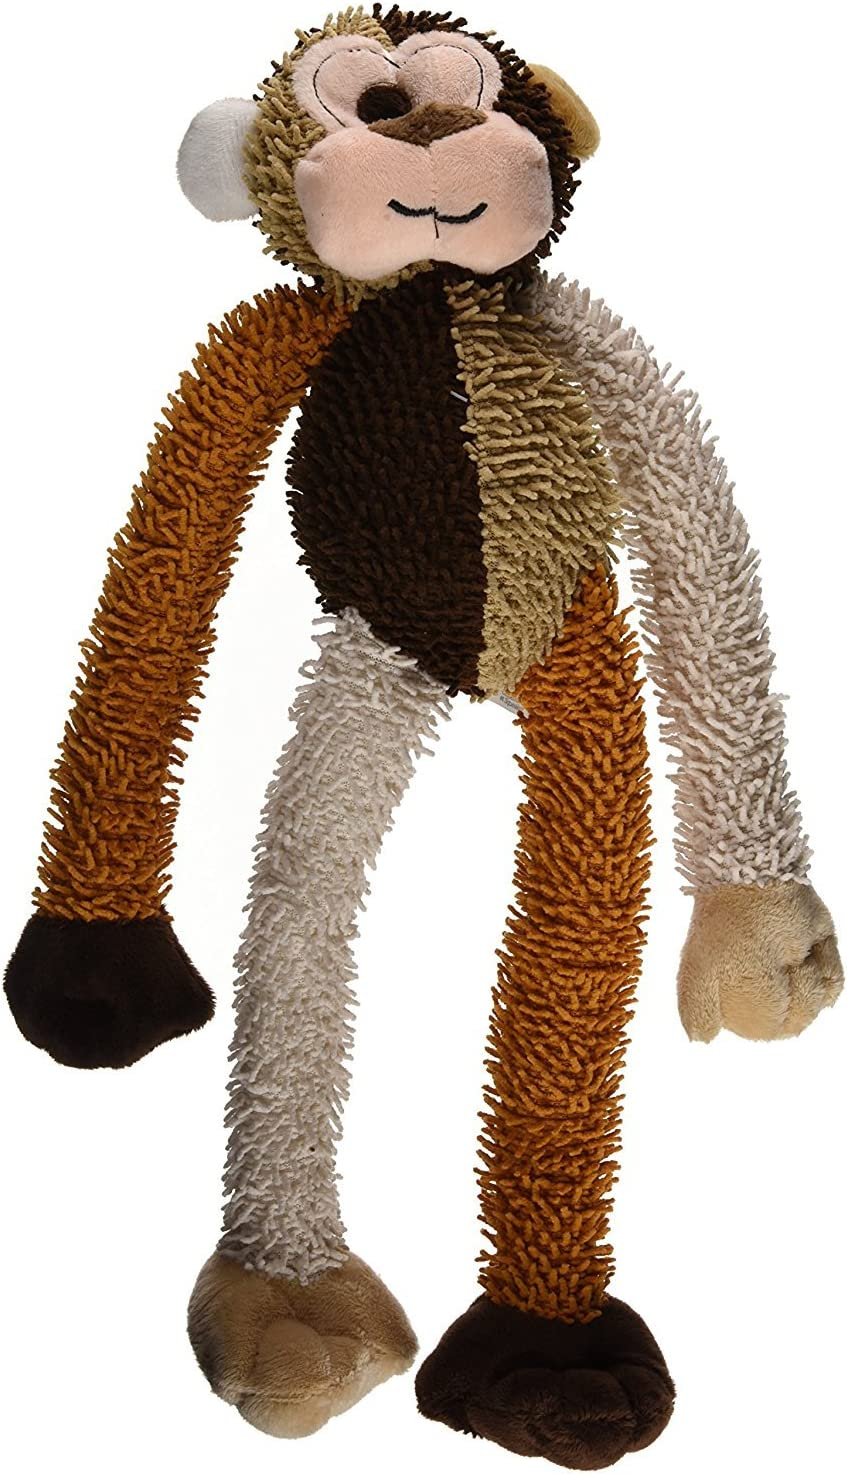 Multipet International DMP37812 Multicrew Monkey Plush Dog Toy, 17-Inch, Colors Vary